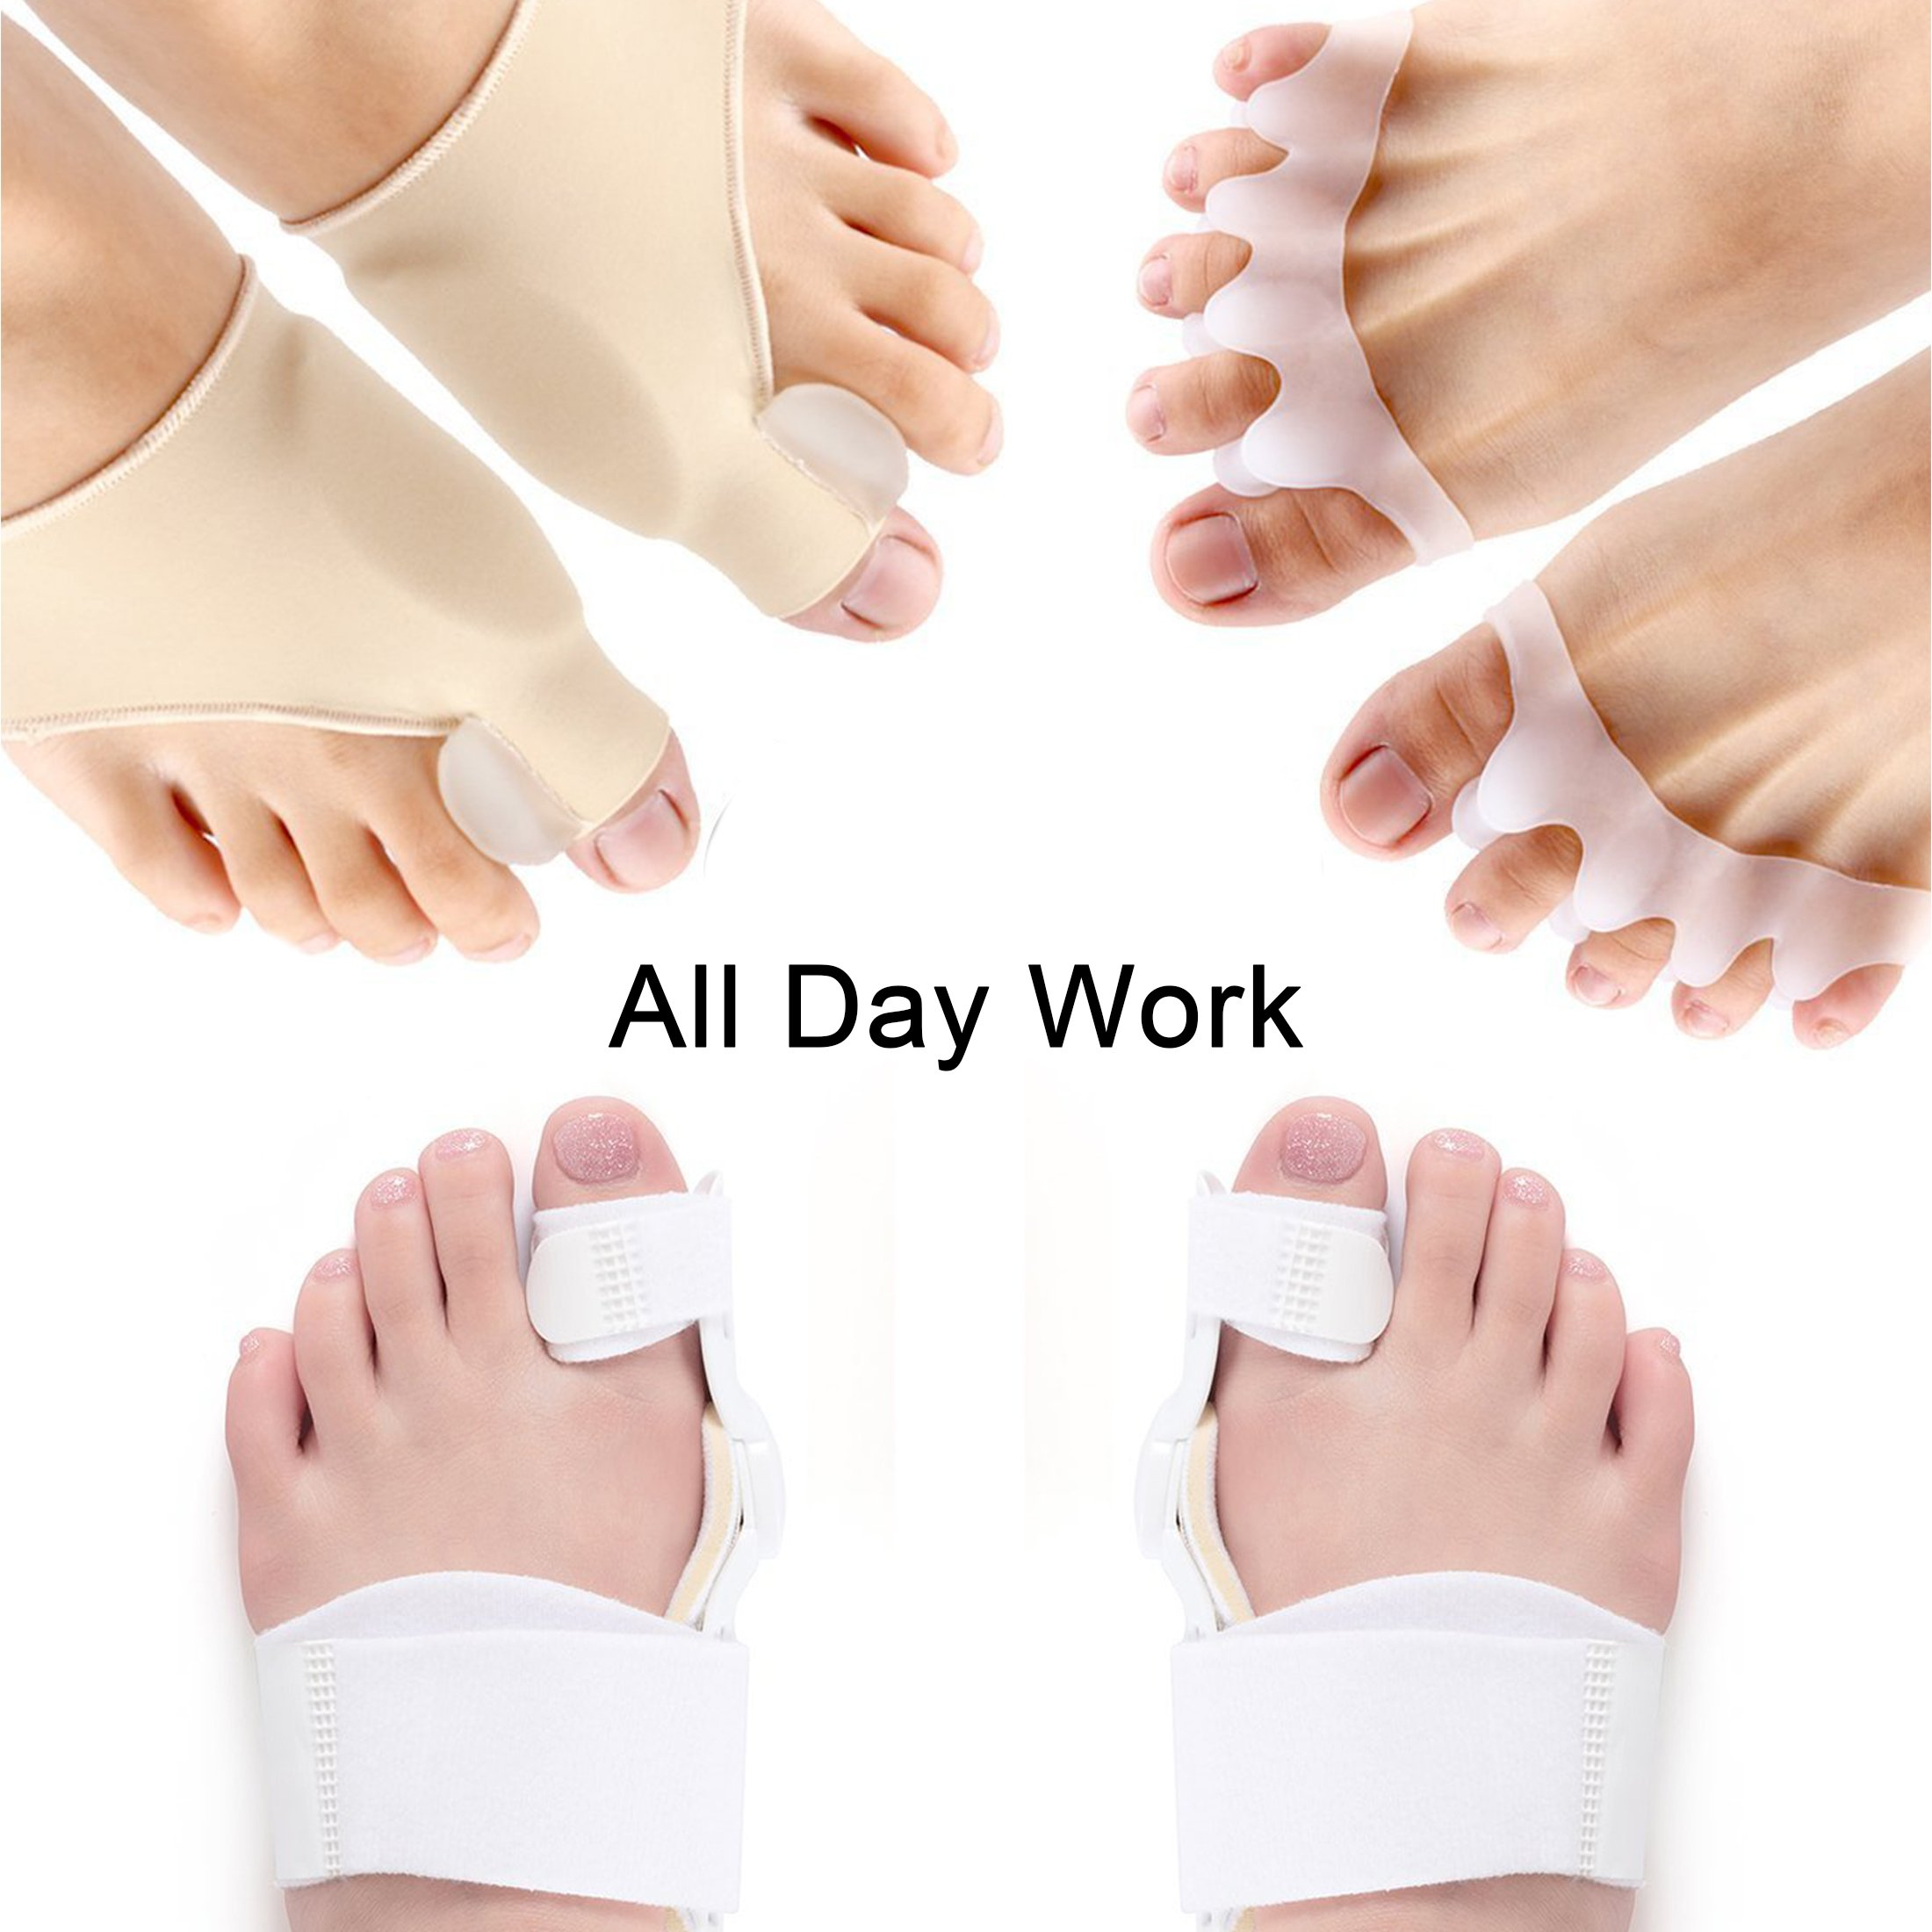 Gel Toe Separator,3 in 1 Toe Spacers Rubber Toe Stretchers Used for Sports Activities, Yoga Practice & Running for Men and Women Bunion Pain Relief Toe Straightener Achilles Stretcher